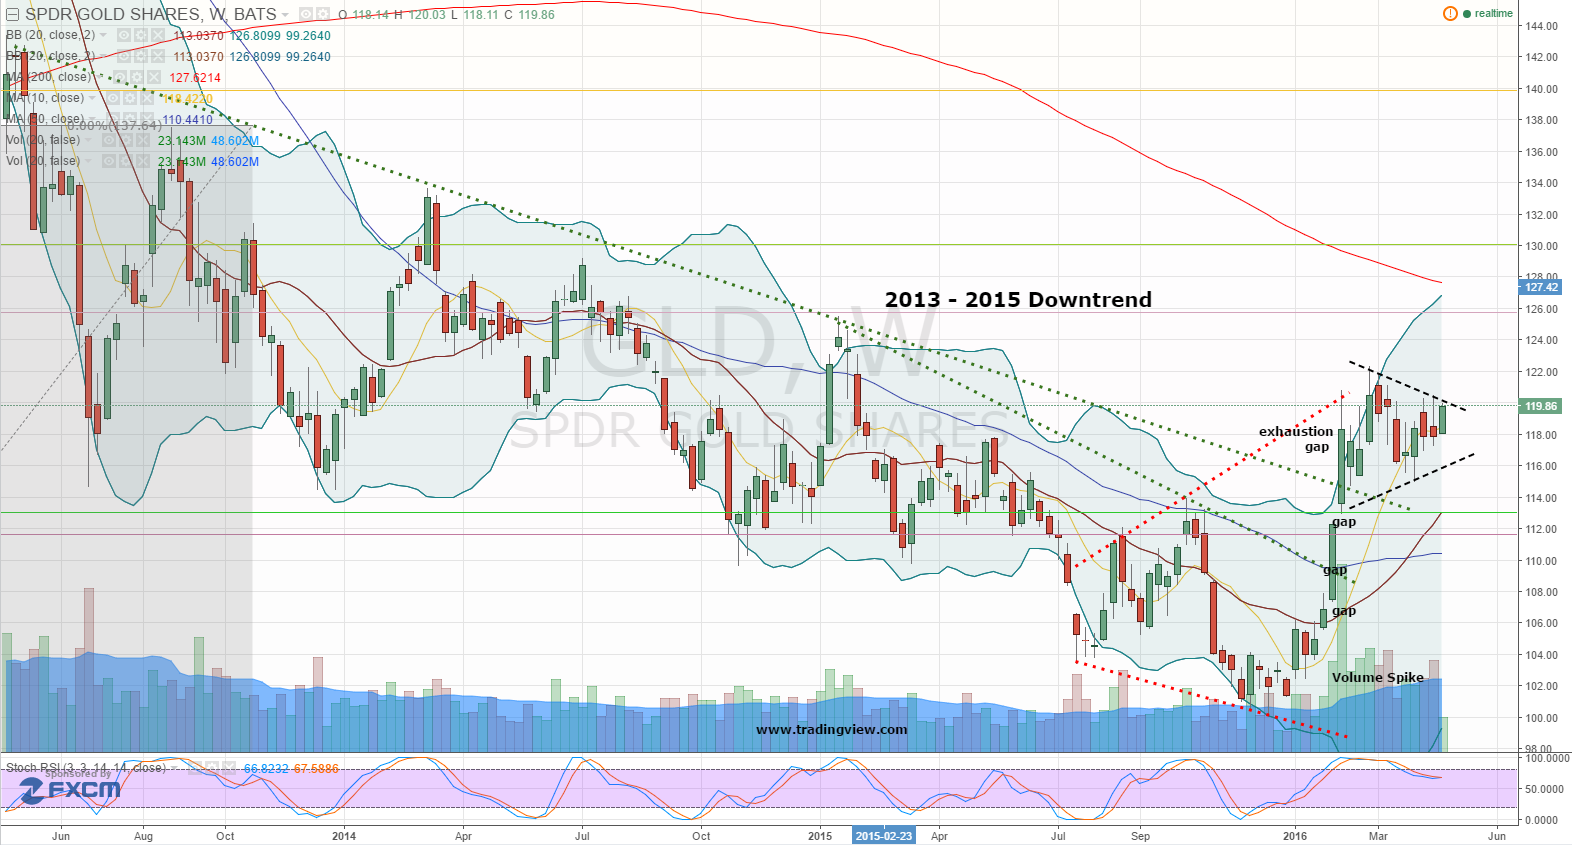 Gld Stock Quote Spdr Gold Trust Etf Gld Buy A Precious Breakout  Investorplace